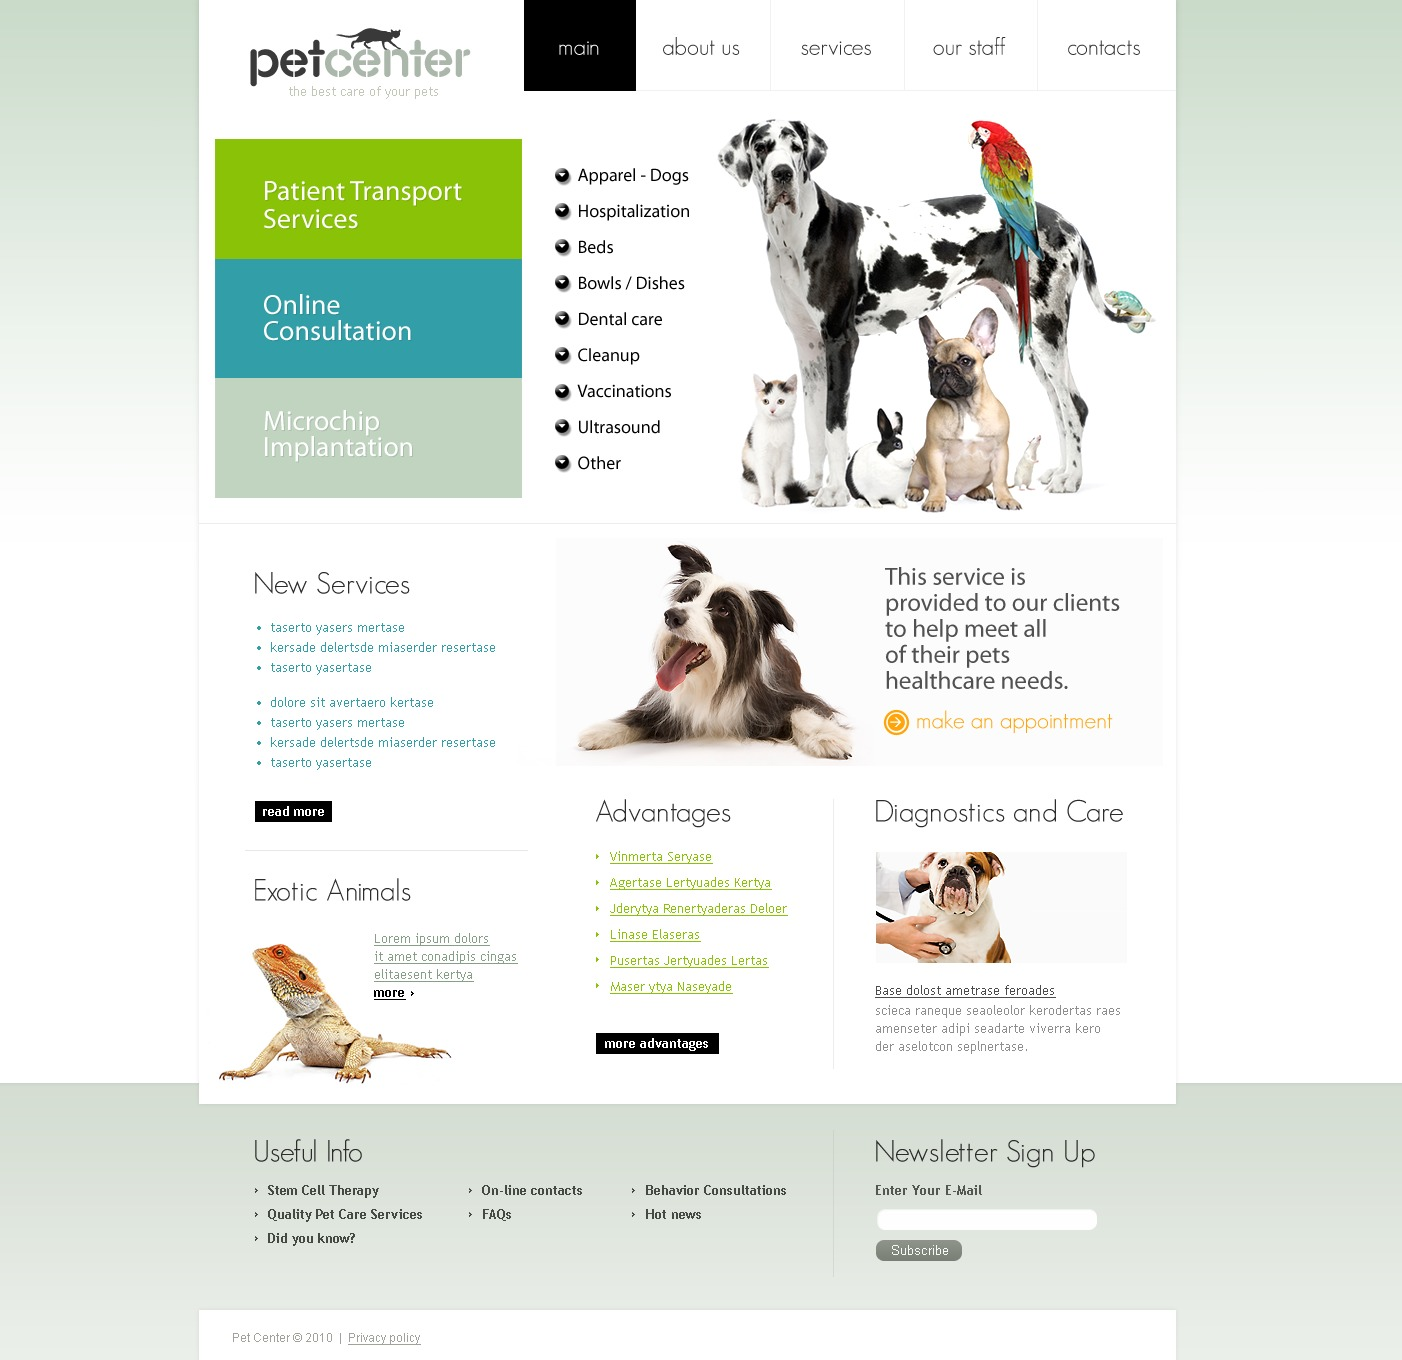 The Pet Center PSD Design 54101, one of the best PSD templates of its kind (medical, animals & pets, wide), also known as pet center PSD template, veterinarian PSD template, pets PSD template, hospital care PSD template, health PSD template, cat PSD template, dog PSD template, doctors PSD template, puppy PSD template, kitten clinical PSD template, veterinary PSD template, vet PSD template, tips PSD template, feed PSD template, medicine PSD template, staff PSD template, services PSD template, breed PSD template, age PSD template, color PSD template, accommodation PSD template, adaptable PSD template, pet PSD template, apparel PSD template, bed PSD template, dishes PSD template, bowl PSD template, cleanup PSD template, collar PSD template, flea PSD template, tick PSD template, grooming PSD template, supplies PSD template, feed PSD template, vi and related with pet center, veterinarian, pets, hospital care, health, cat, dog, doctors, puppy, kitten clinical, veterinary, vet, tips, feed, medicine, staff, services, breed, age, color, accommodation, adaptable, pet, apparel, bed, dishes, bowl, cleanup, collar, flea, tick, grooming, supplies, feed, vi, etc.